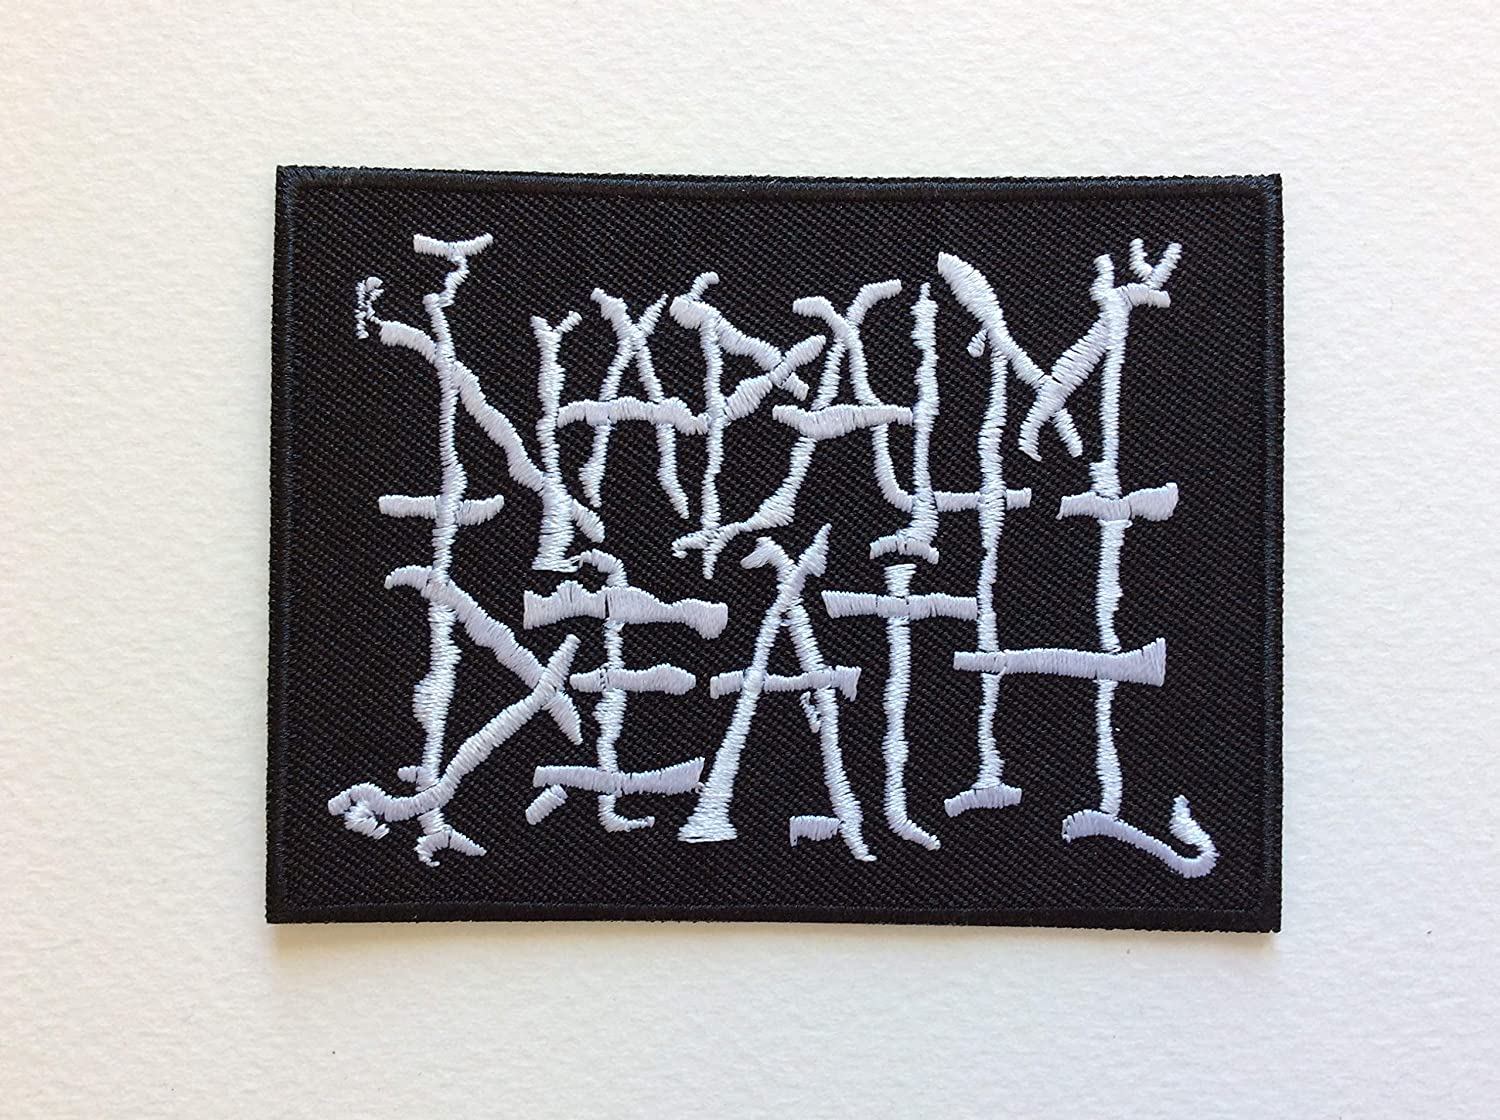 6,5 CM Napalm Death 9 BLUE HAWAI ECUSSON Patches AUFNAHER Toppa THERMOCOLLANT